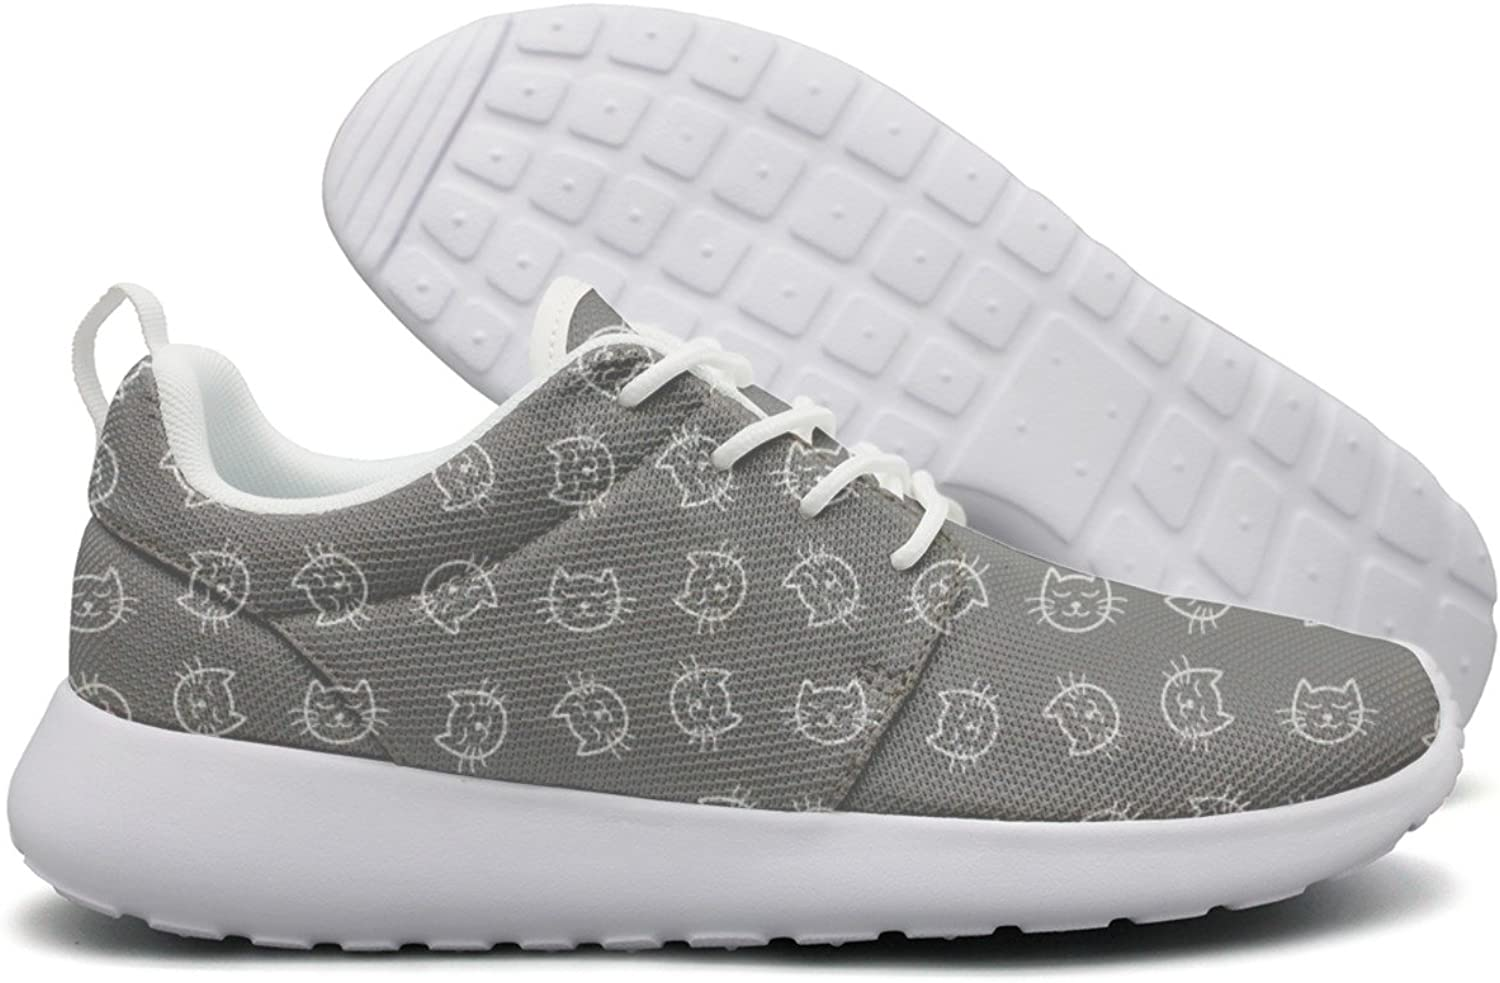 Hoohle Sports Cute White Cat Face Brown Background Women Roshe One Flex Mesh Lightweight Running shoes